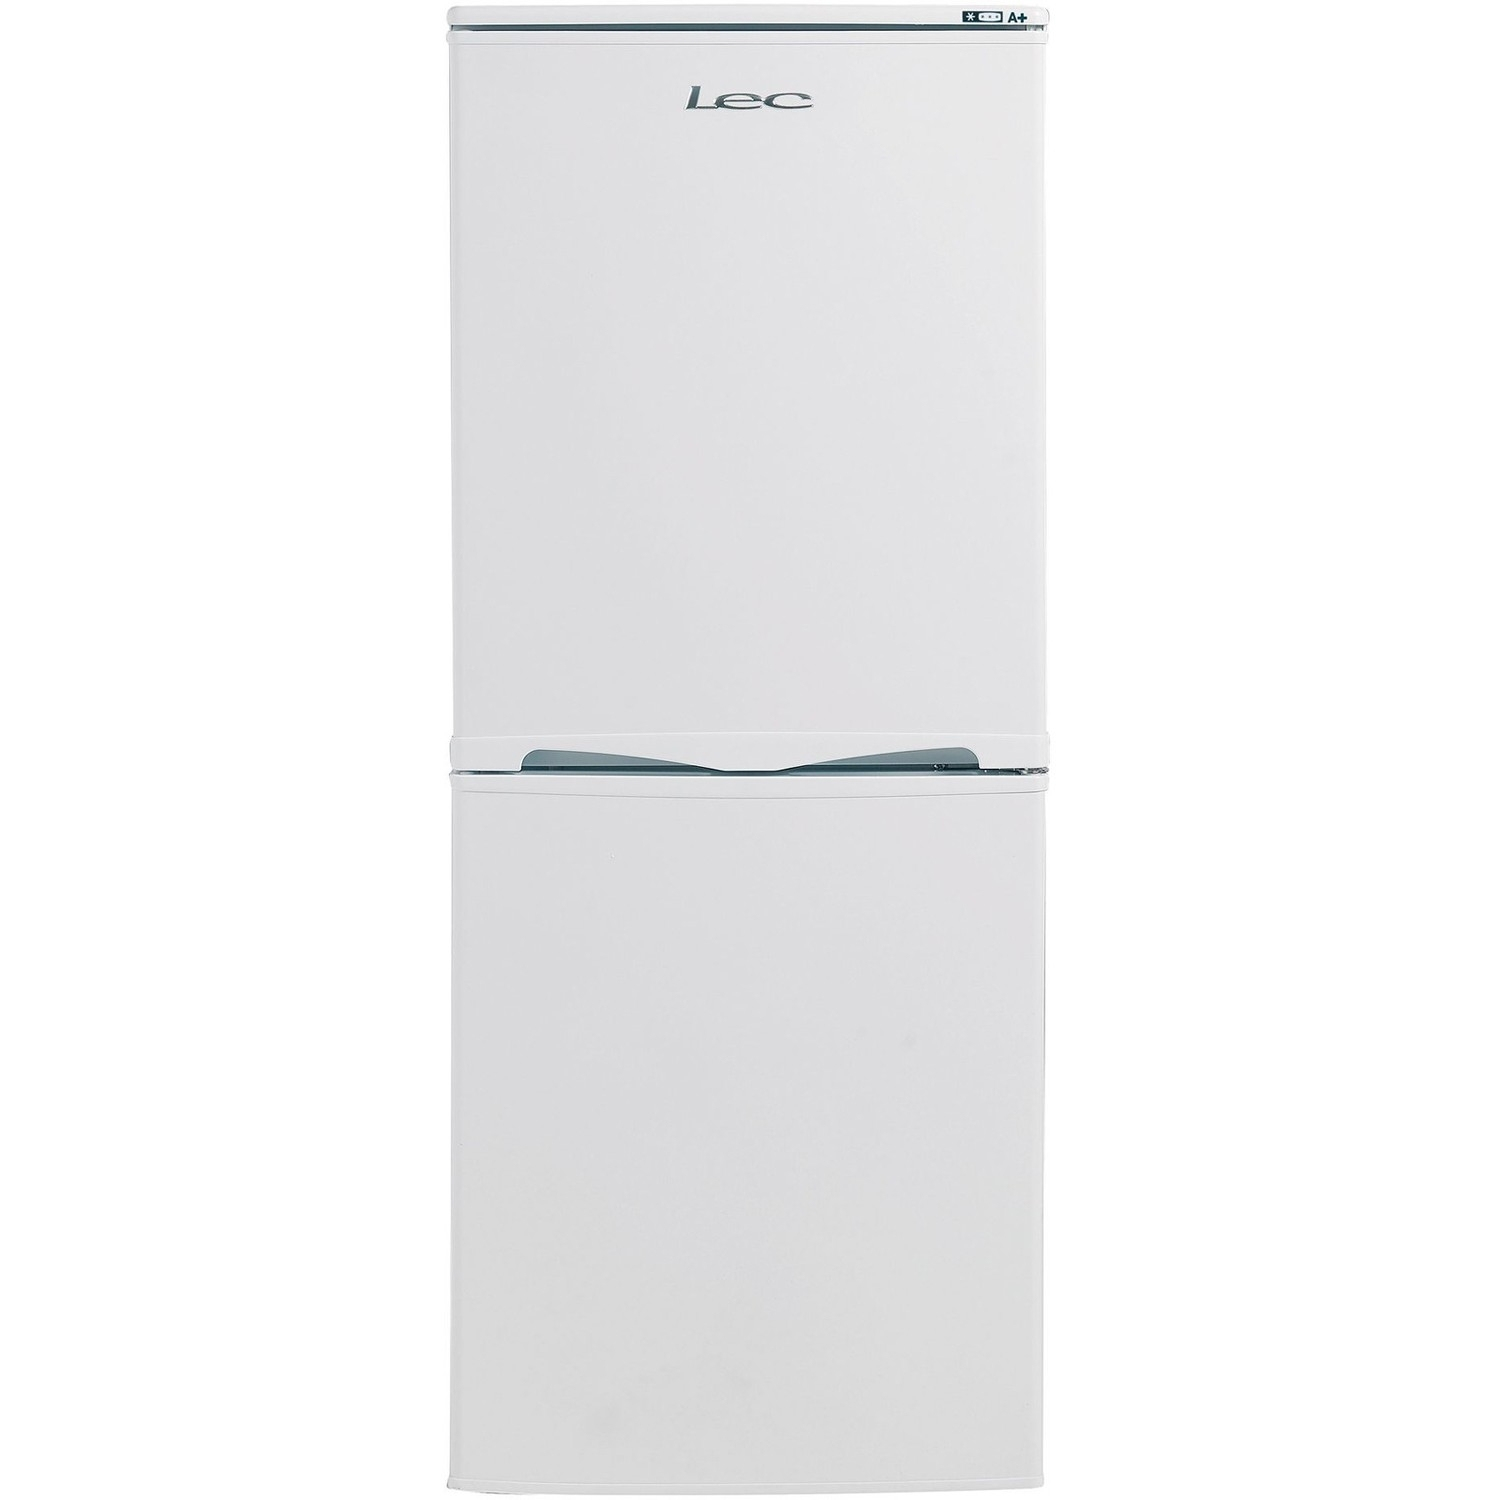 Lec 50cm Fridge Freezer - White - A+ Rated - 1